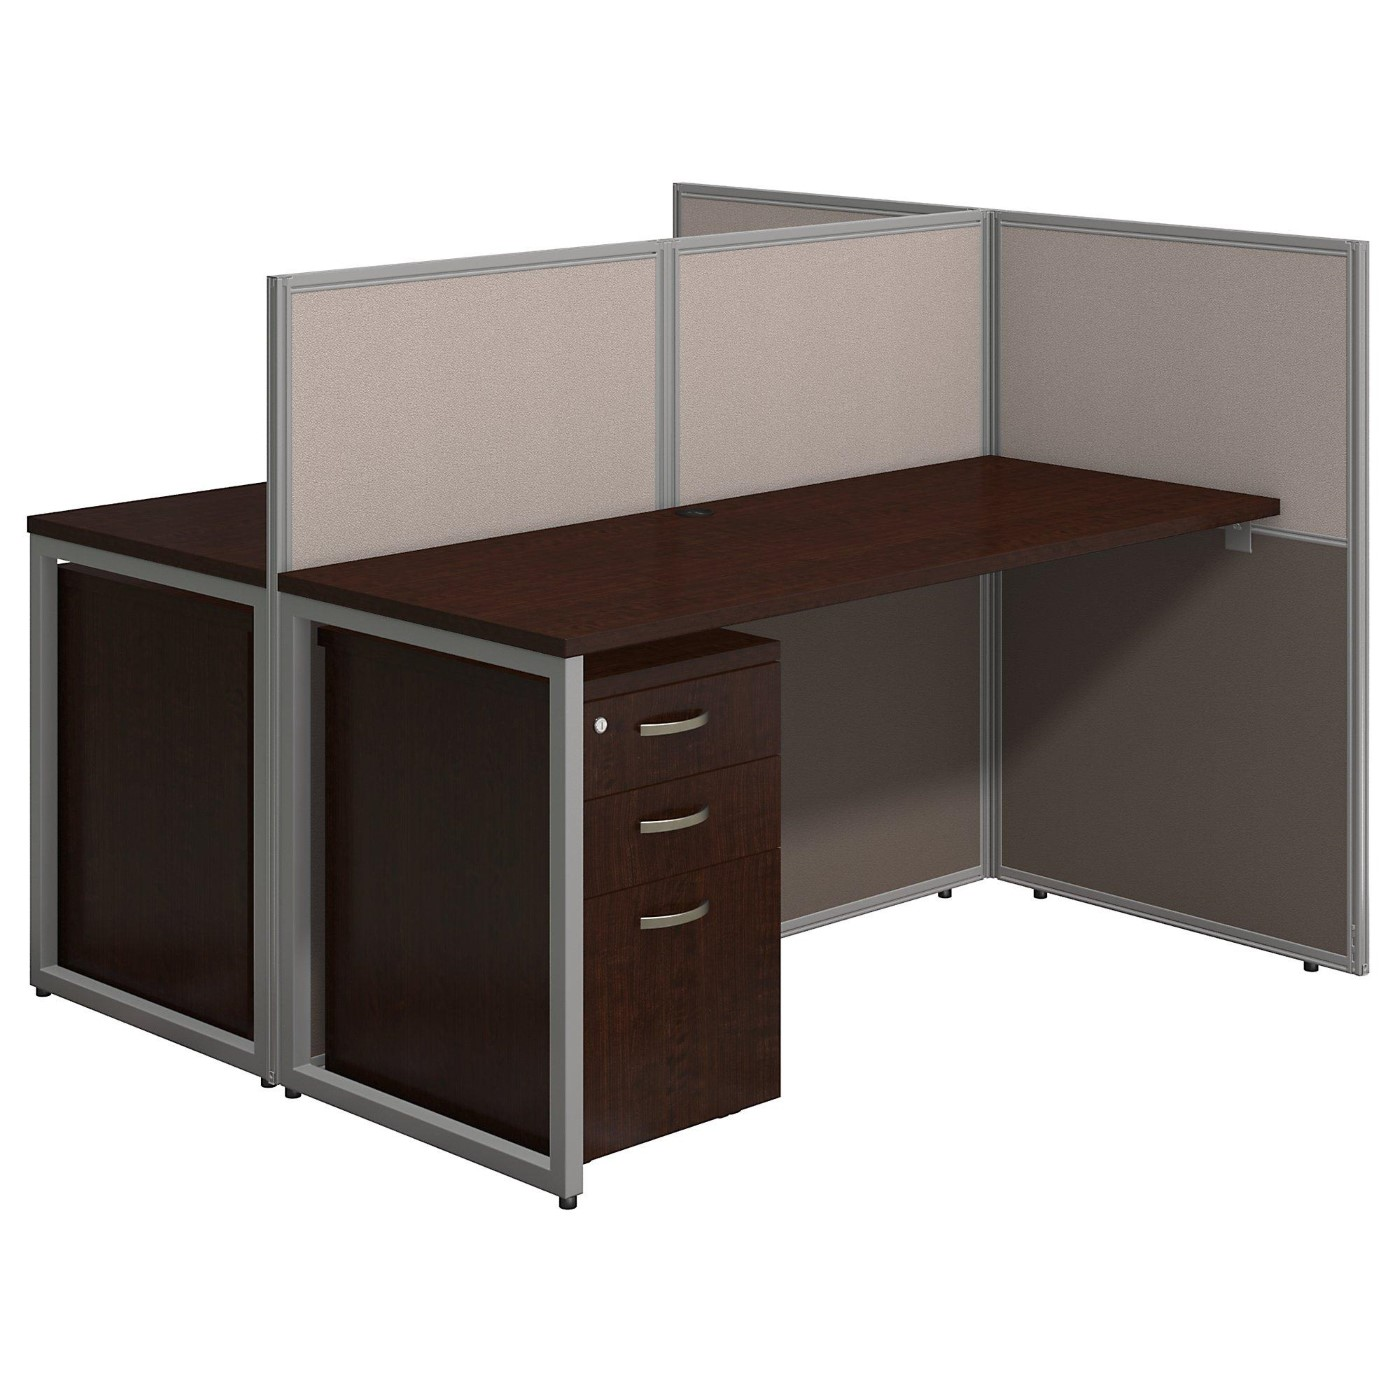 <font color=#c60><b>BUSH BUSINESS FURNITURE EASY OFFICE 60W TWO PERSON STRAIGHT DESK OPEN OFFICE WITH MOBILE FILE CABINETS. FREE SHIPPING</font></b></font></b>